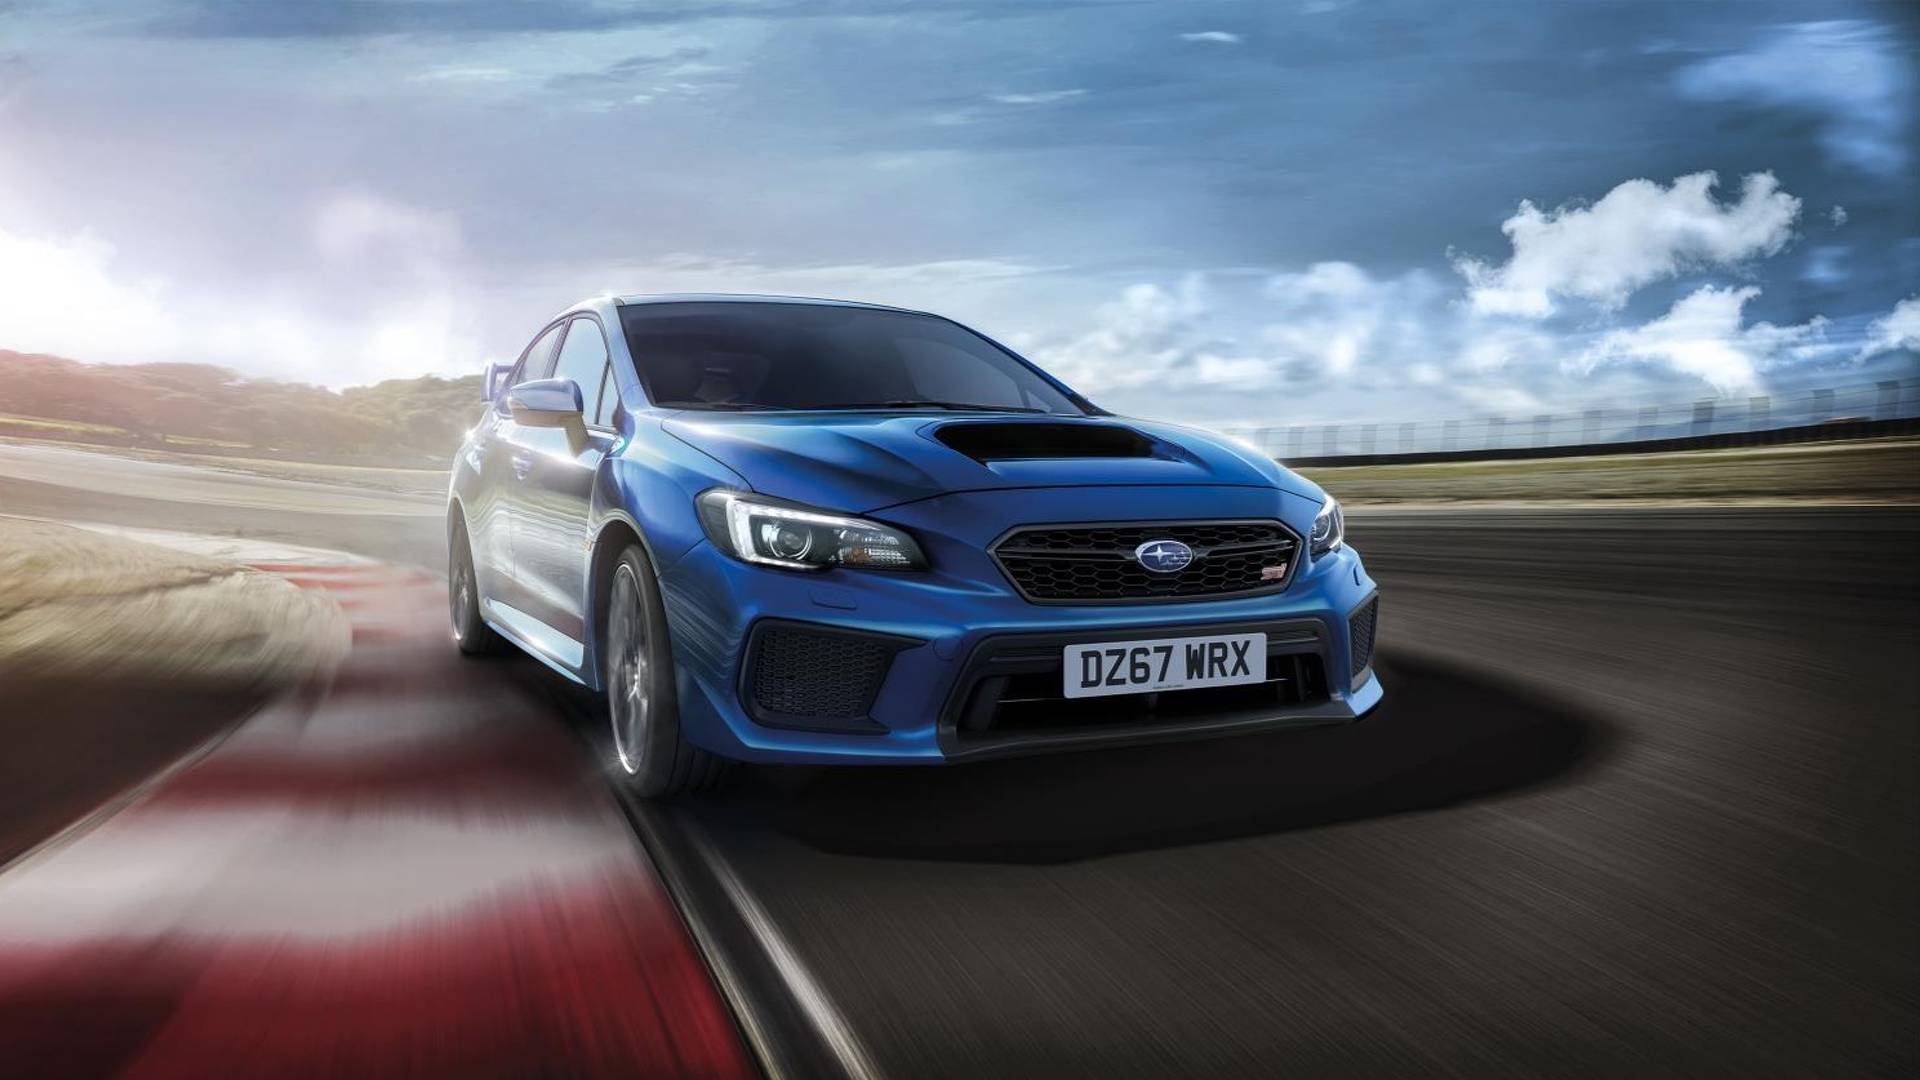 2018 Subaru Wrx Sti Final Edition Uk Model